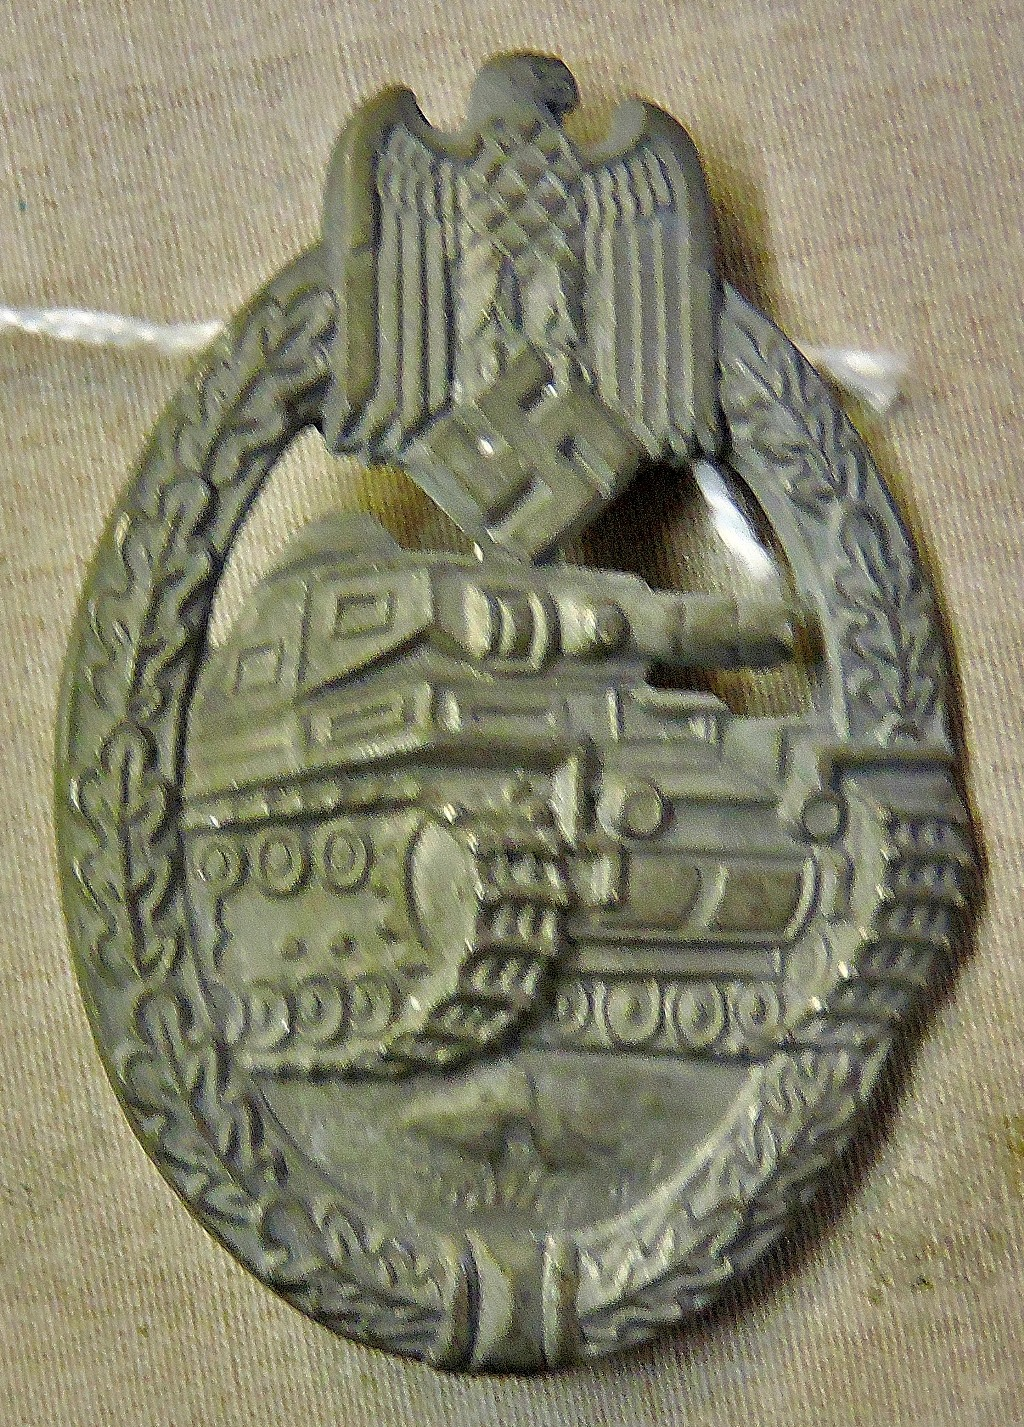 Lot 335 - German WWII Panzer Assault Badge, Silver Grade. See T&C's